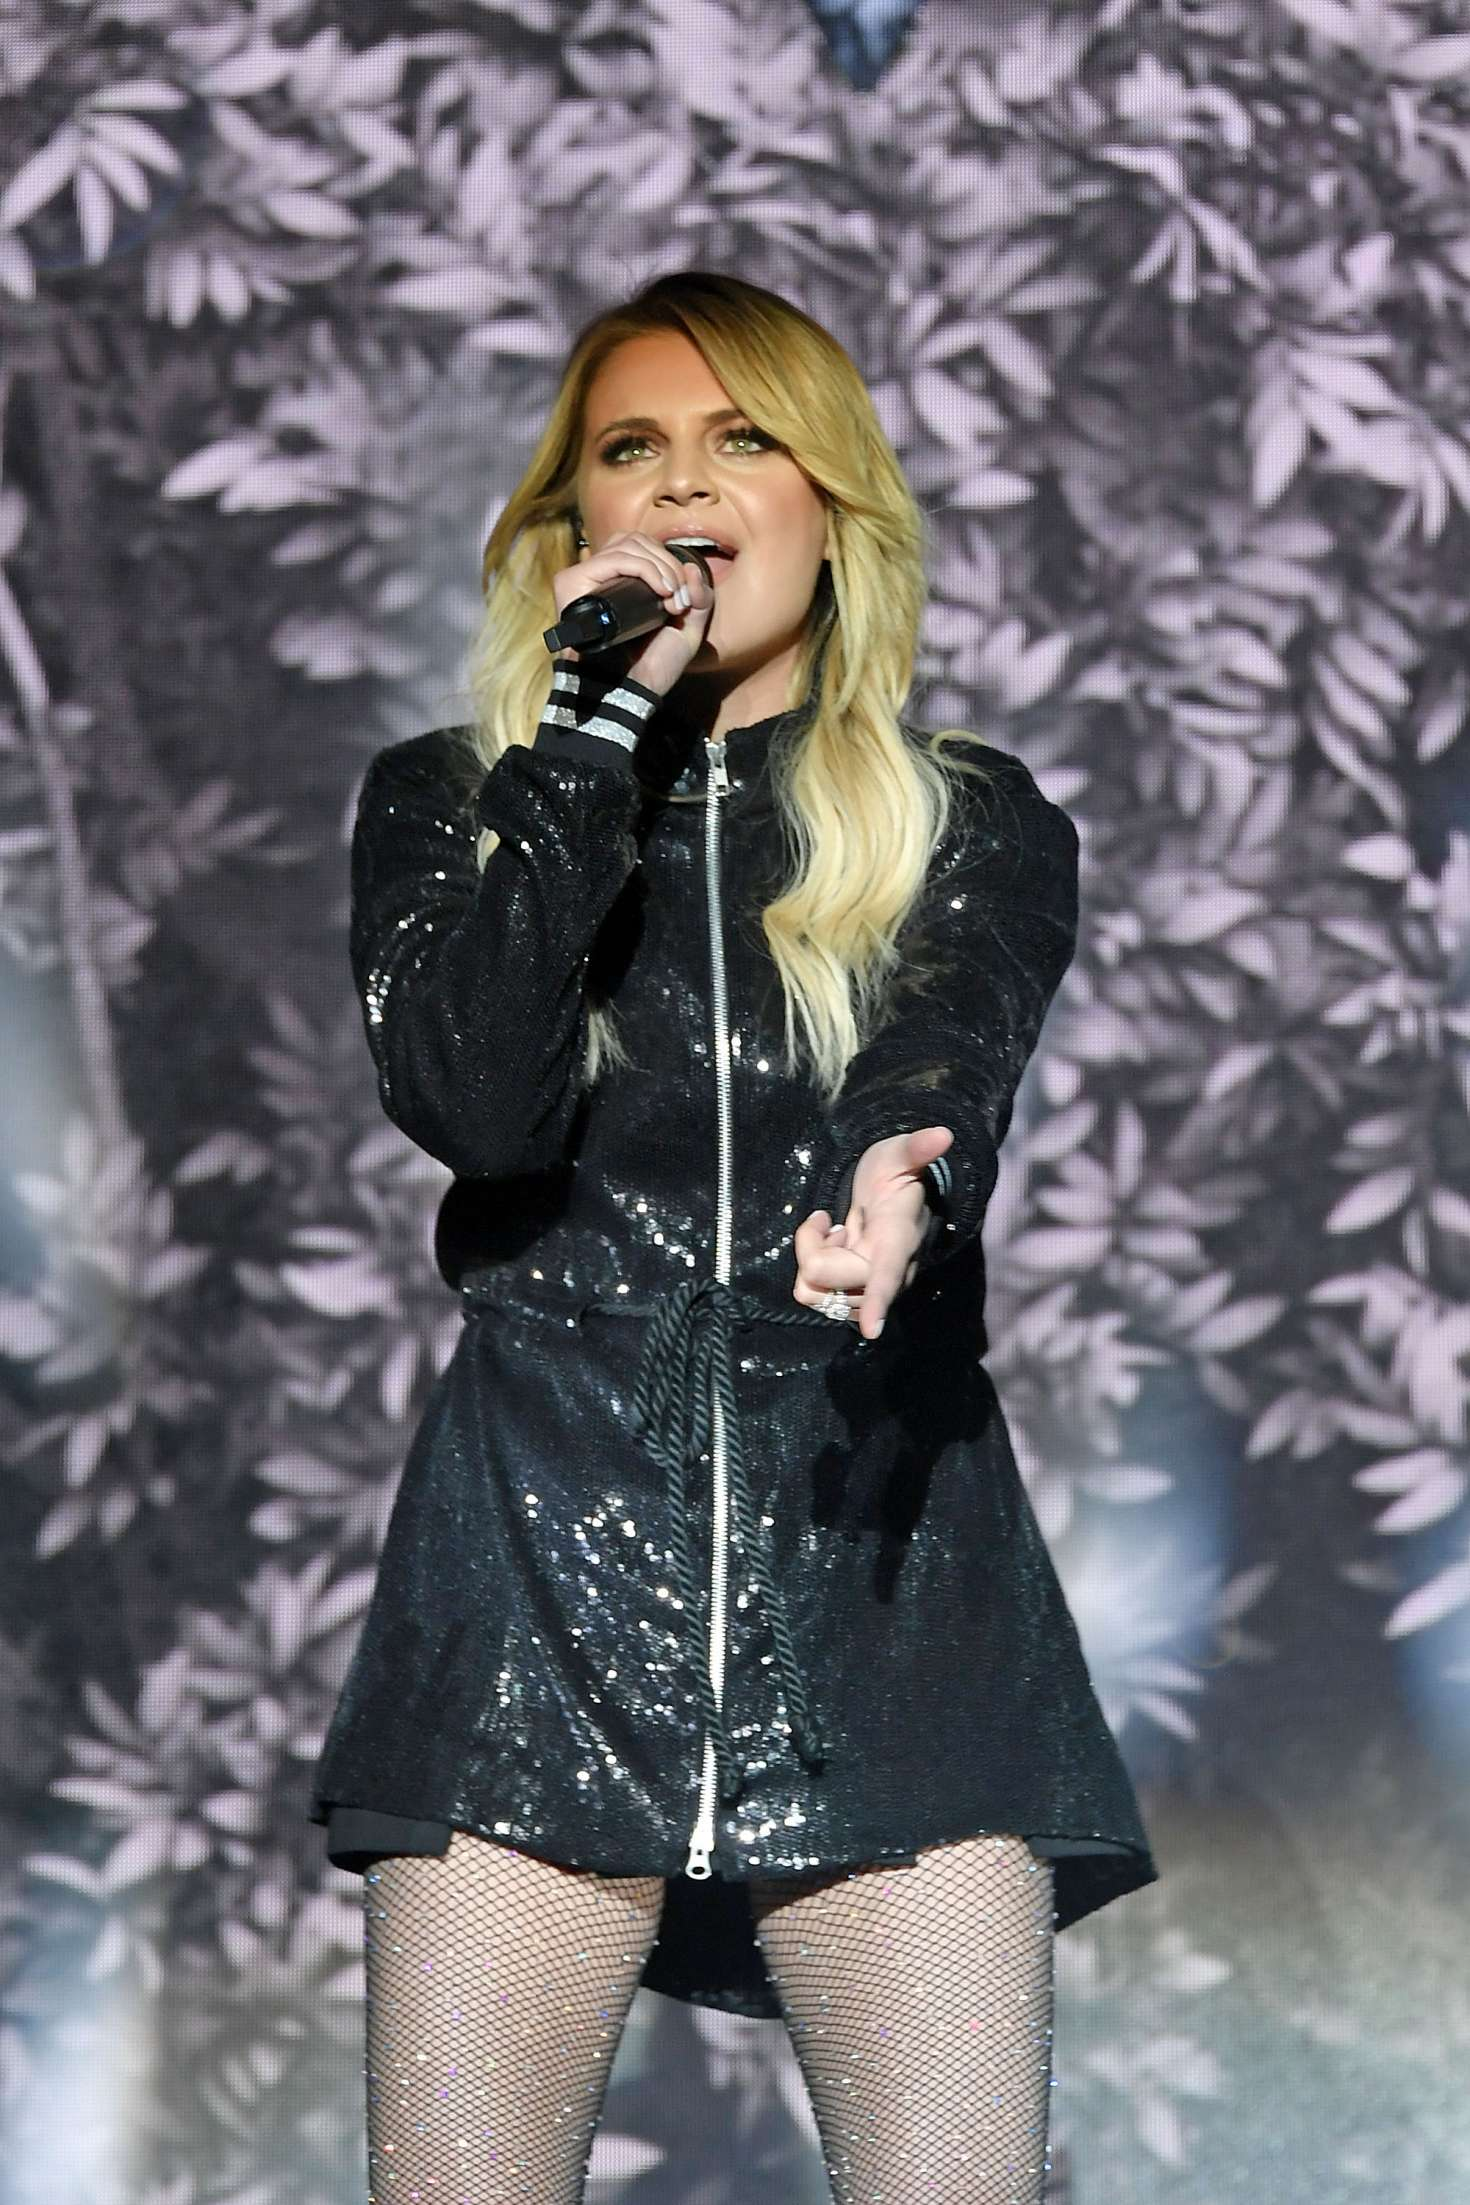 Kelsea Ballerini - Performs at PlayStation Theater in New York City